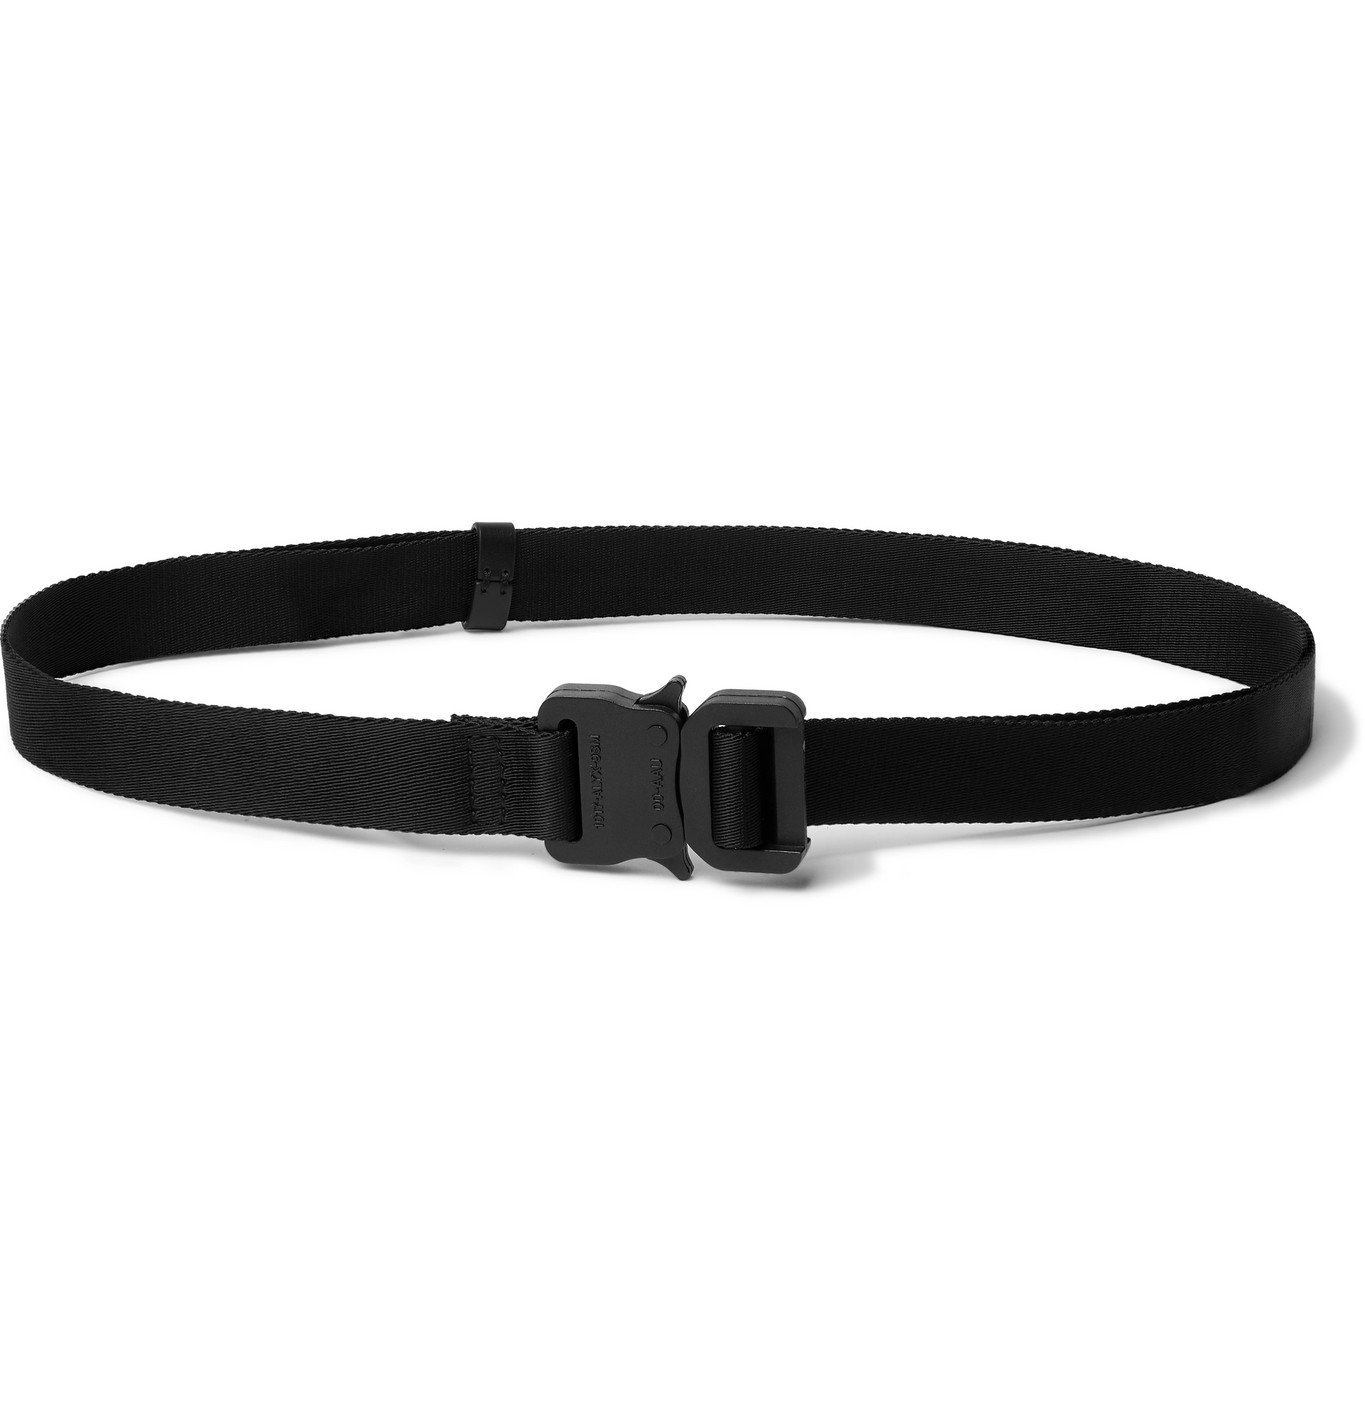 Photo: 1017 ALYX 9SM - 2cm Webbing Belt - Black